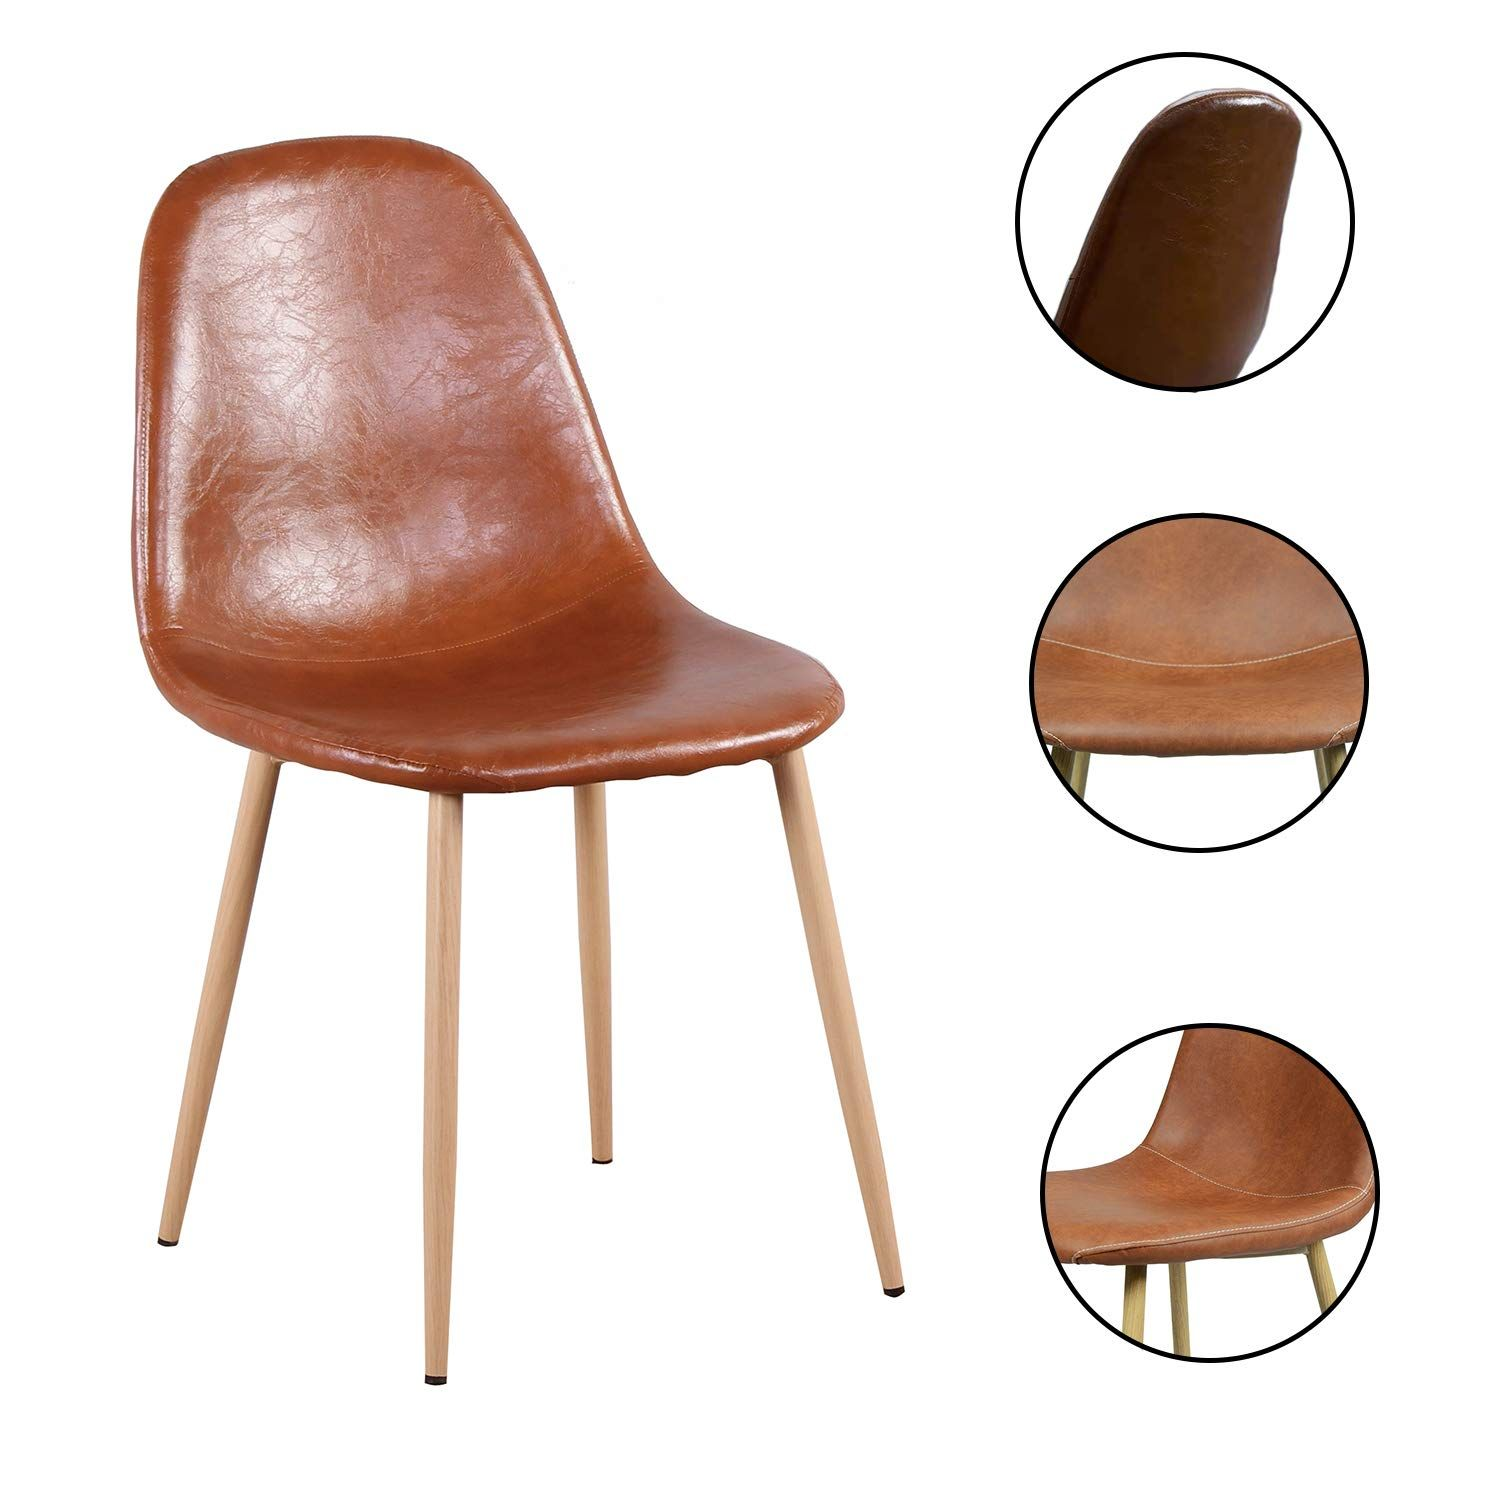 Set of 4 PU Leather Eames Style Dining Chair with Wooden